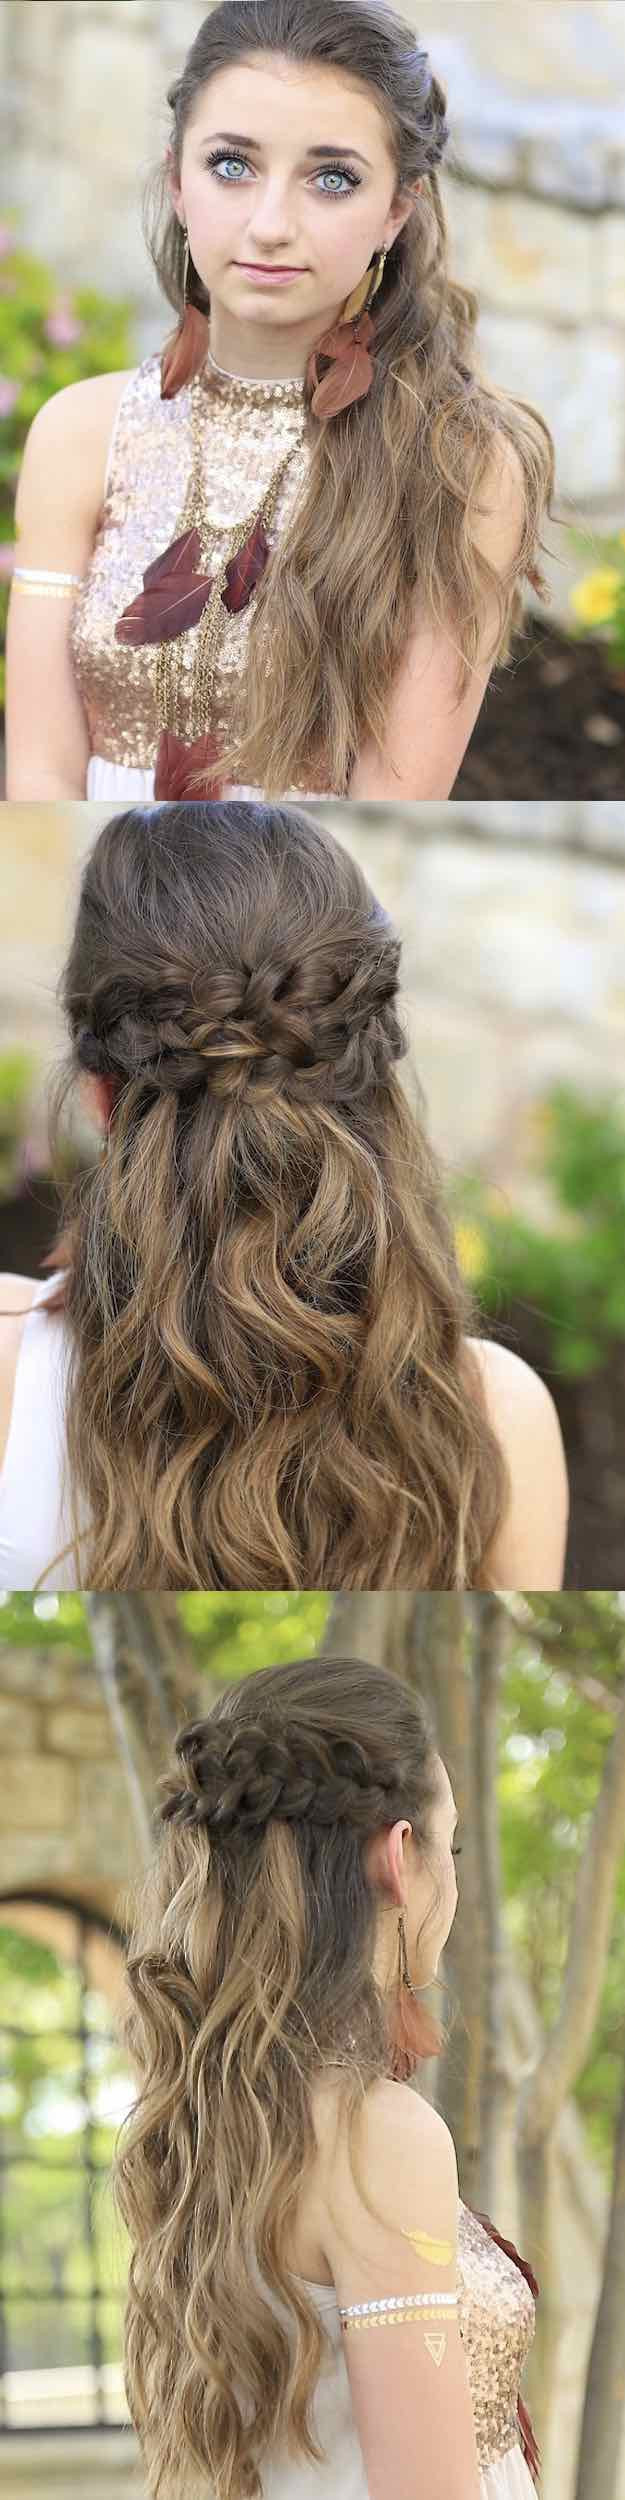 Best ideas about Prom Half Up Half Down Hairstyles . Save or Pin 25 Easy Half Up Half Down Hairstyle Tutorials For Prom Now.